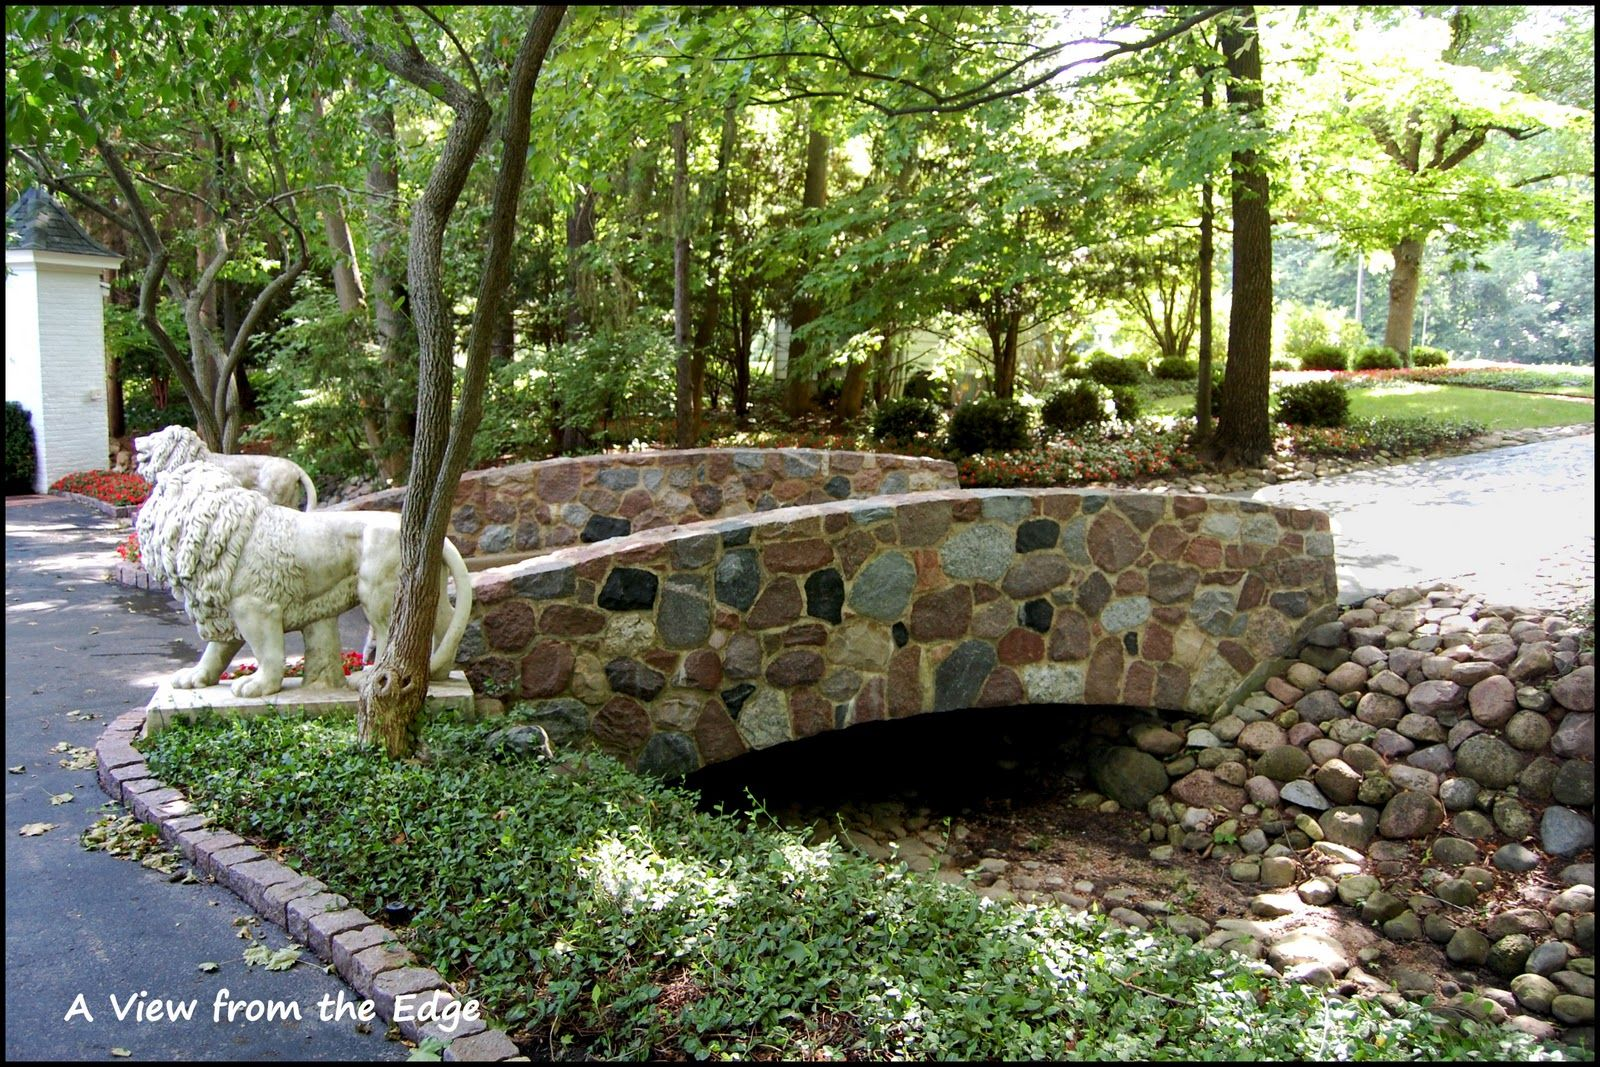 Cute bridge to build over our wash running through the